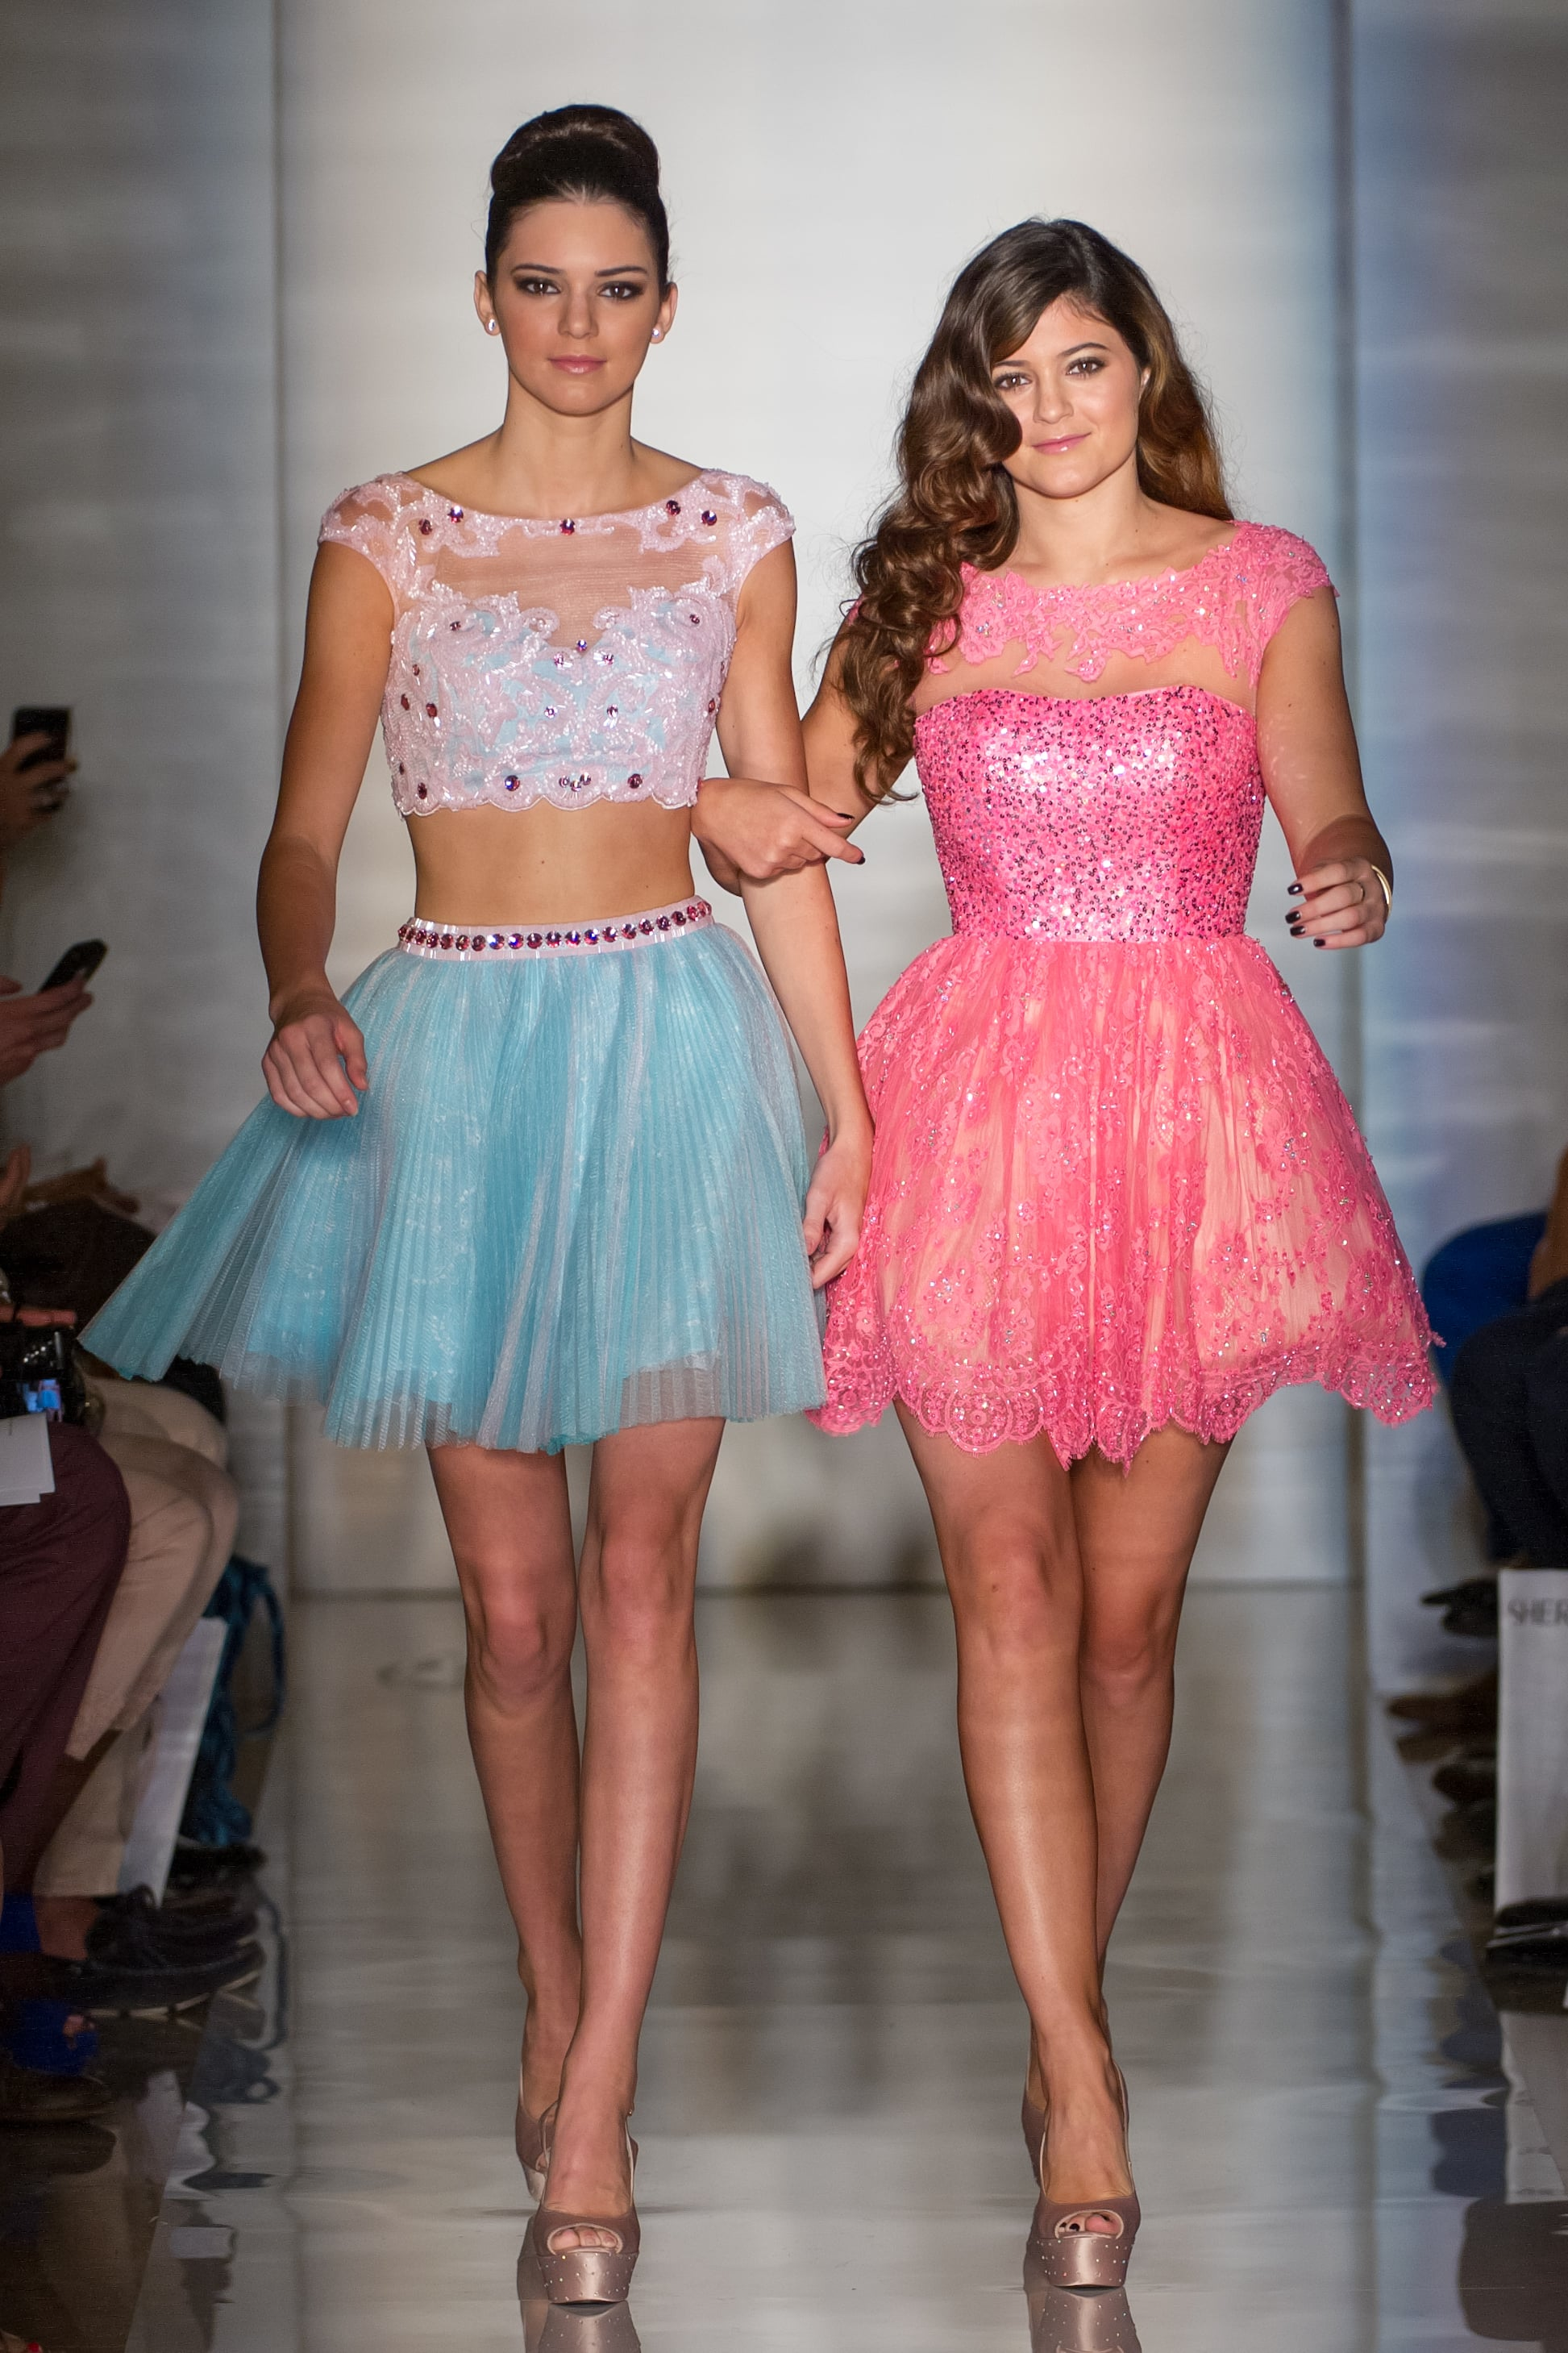 In 2012, Kylie joined Kendall on the runway for the Sherri Hill show at New York Fashion Week.